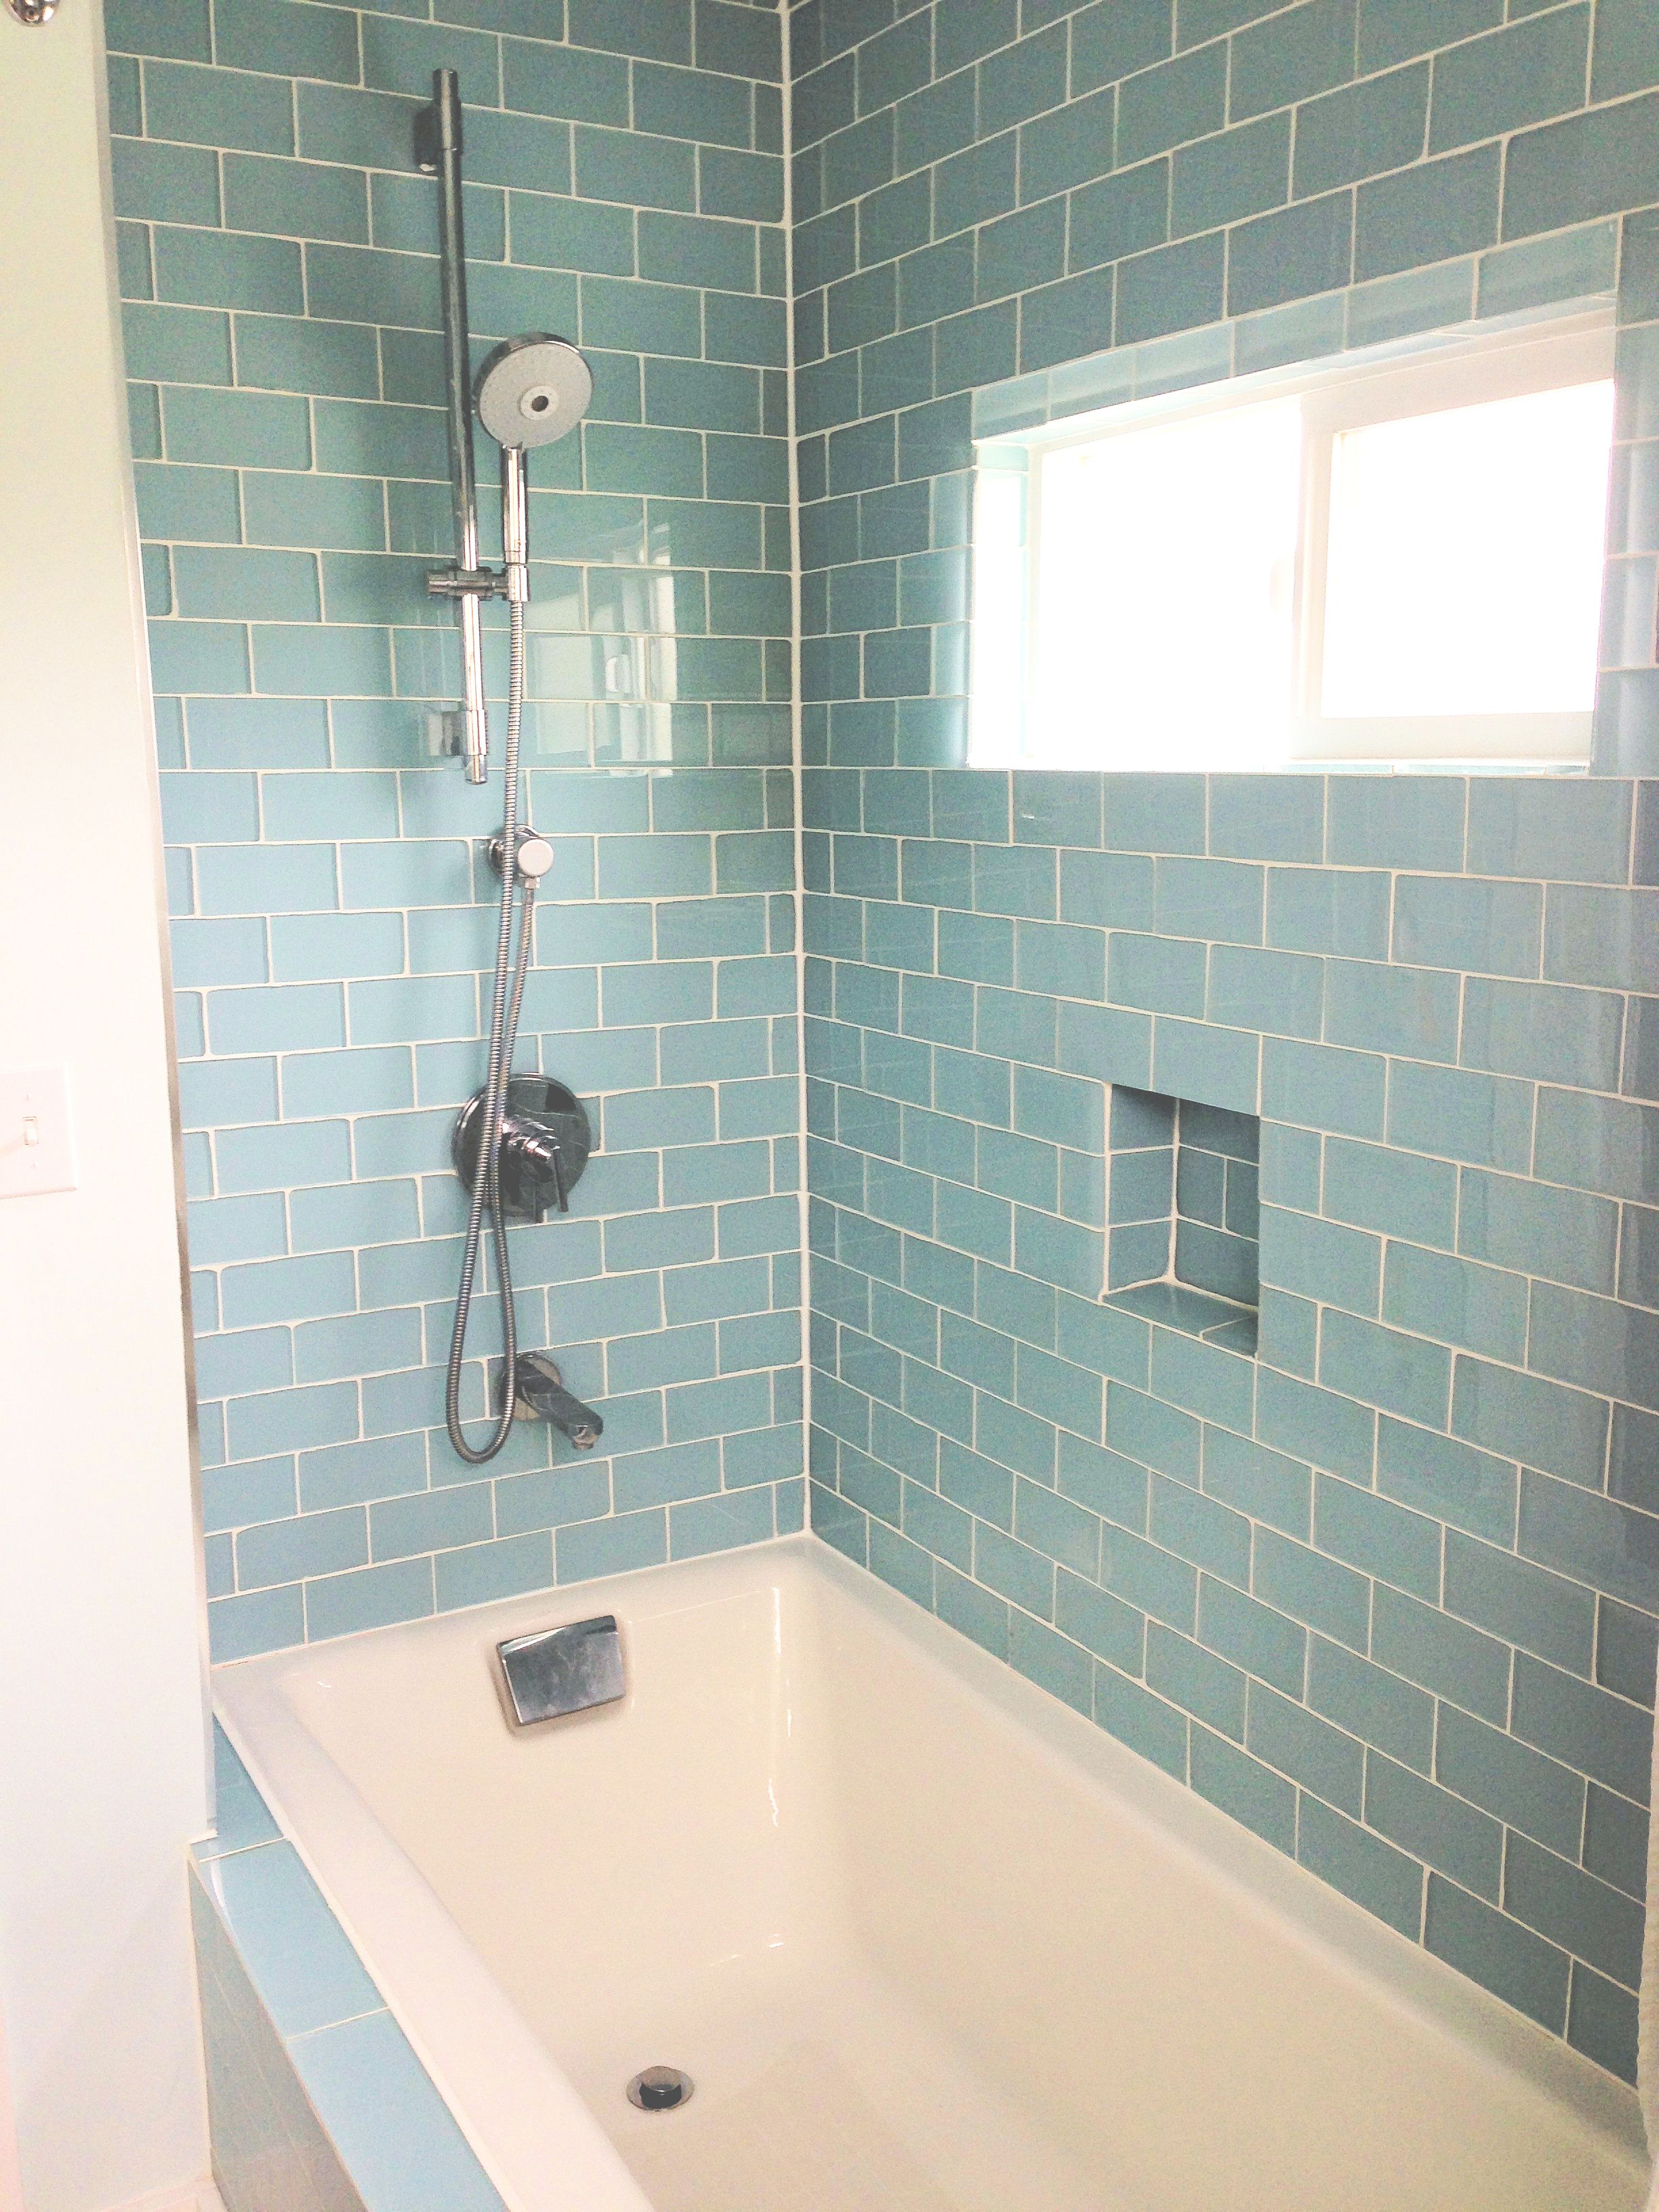 vapor glass subway tile | subway tiles, outlets and glass shower